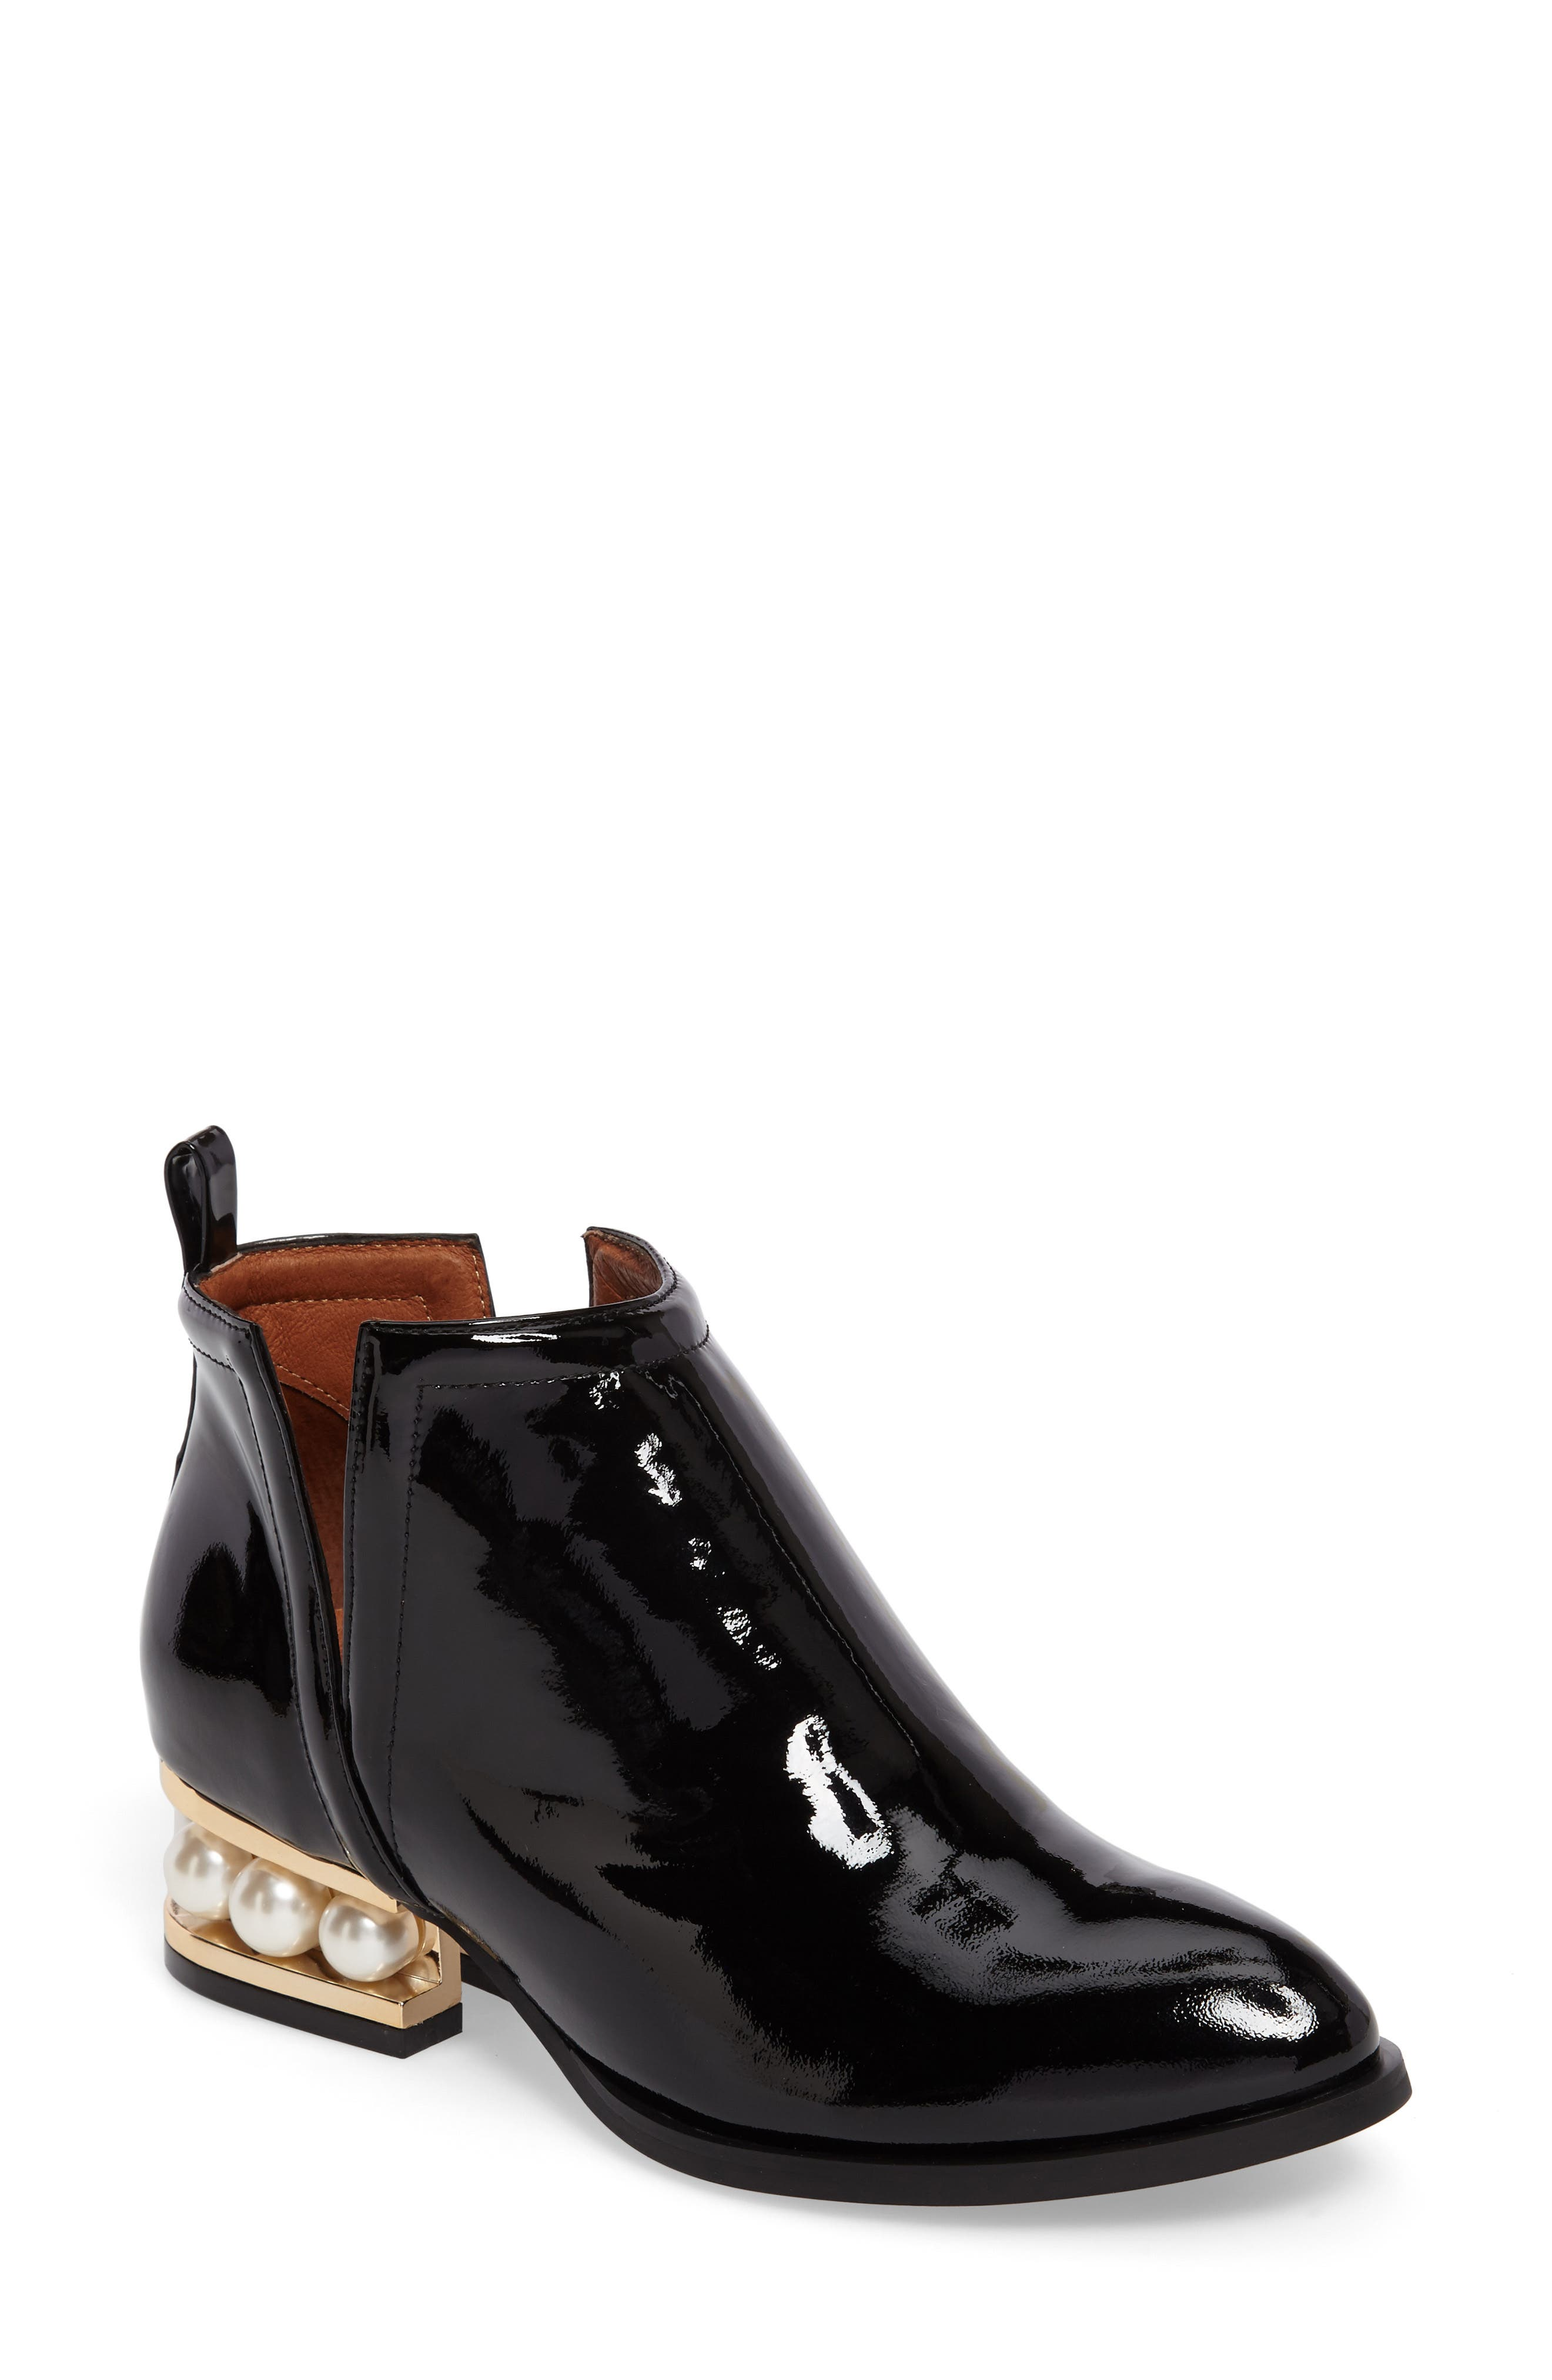 Musklo Split-Shaft Bootie,                             Main thumbnail 1, color,                             Black/ Gold Patent Leather